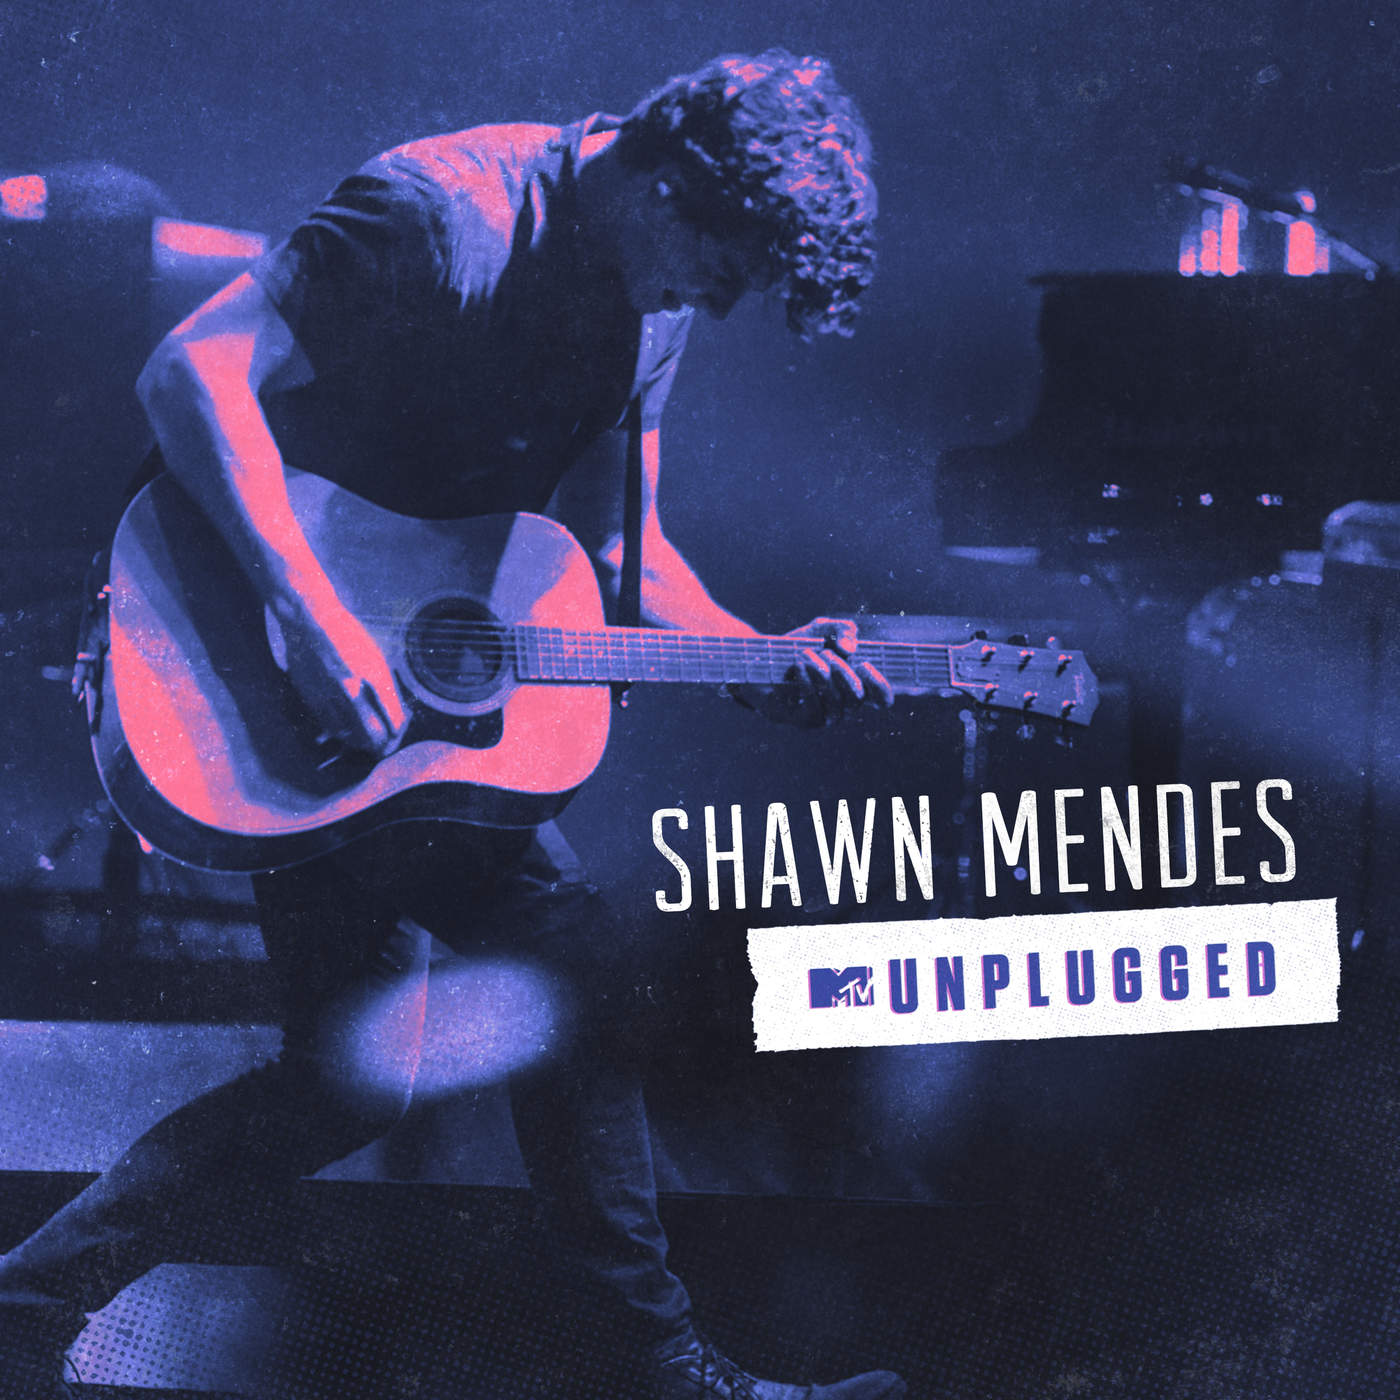 Shawn Mendes - Don't Be a Fool (MTV Unplugged) - Single